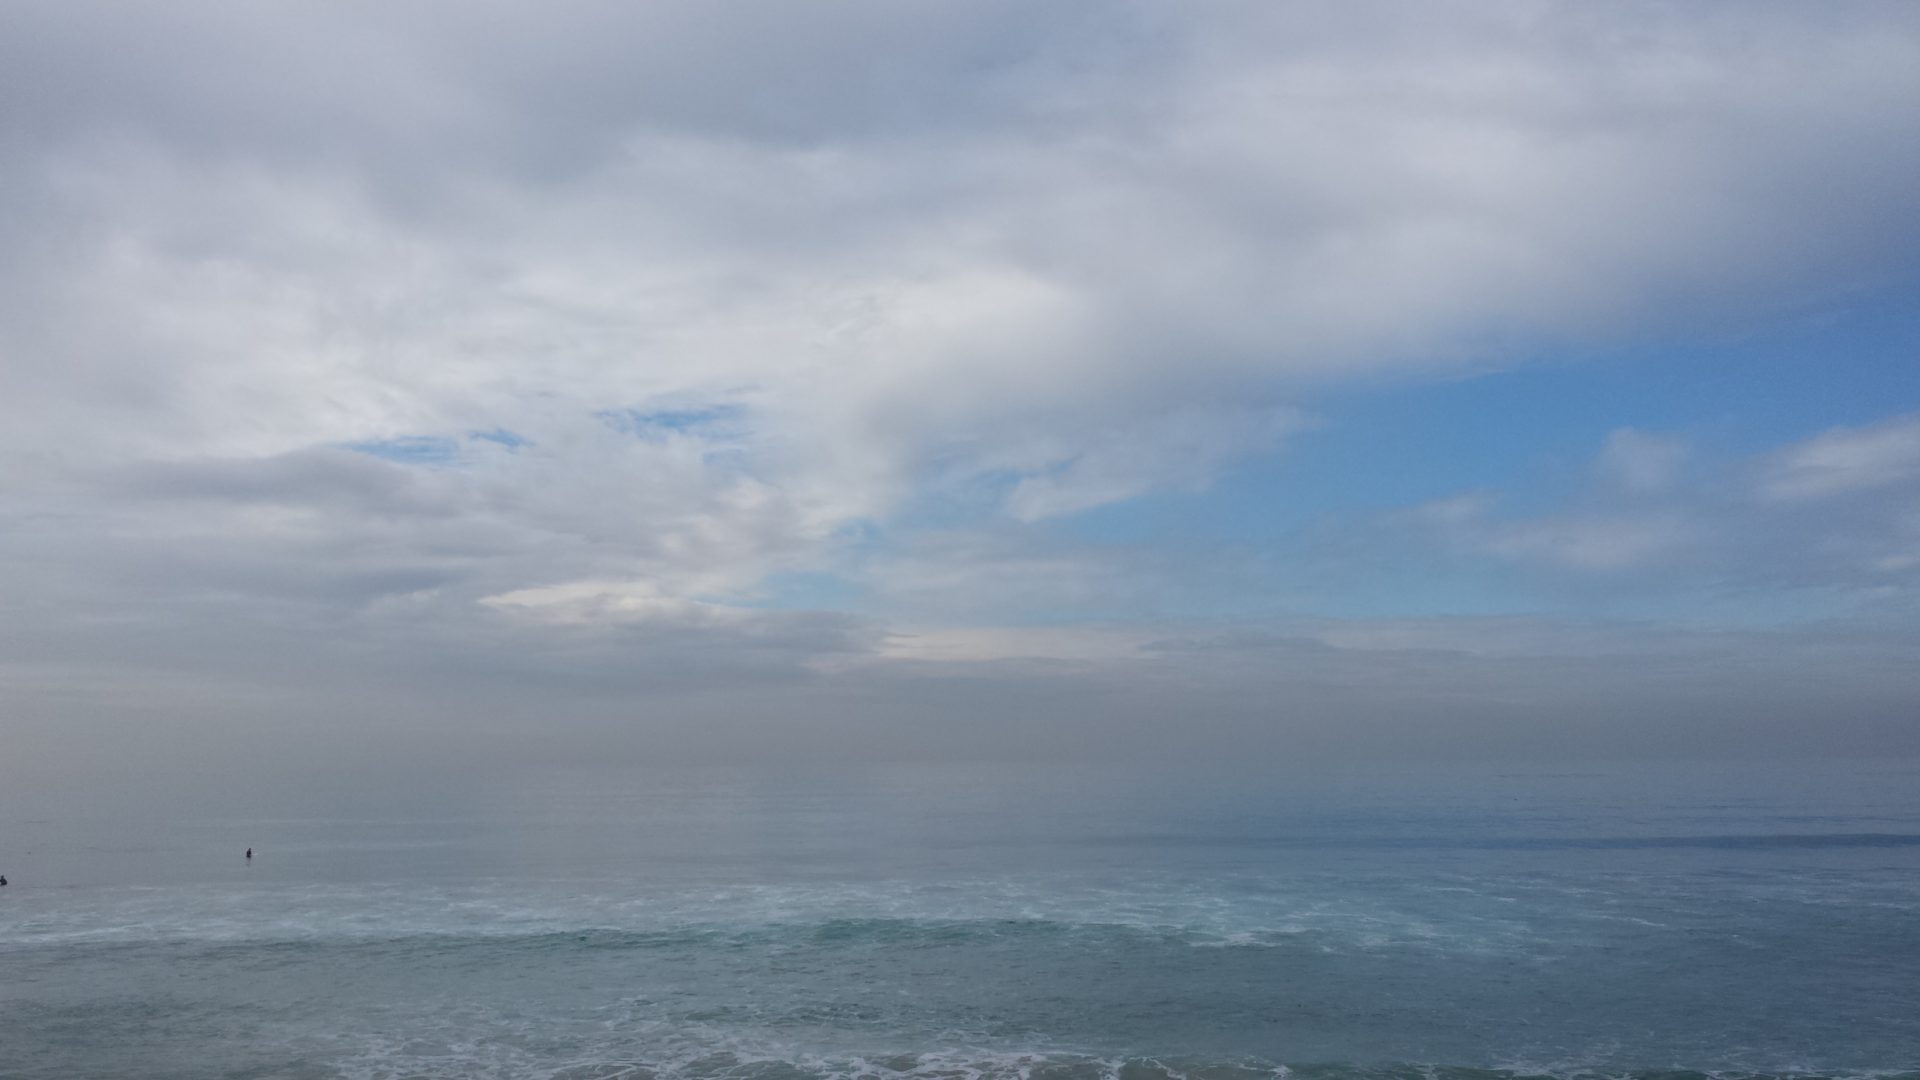 Another fogged horizon